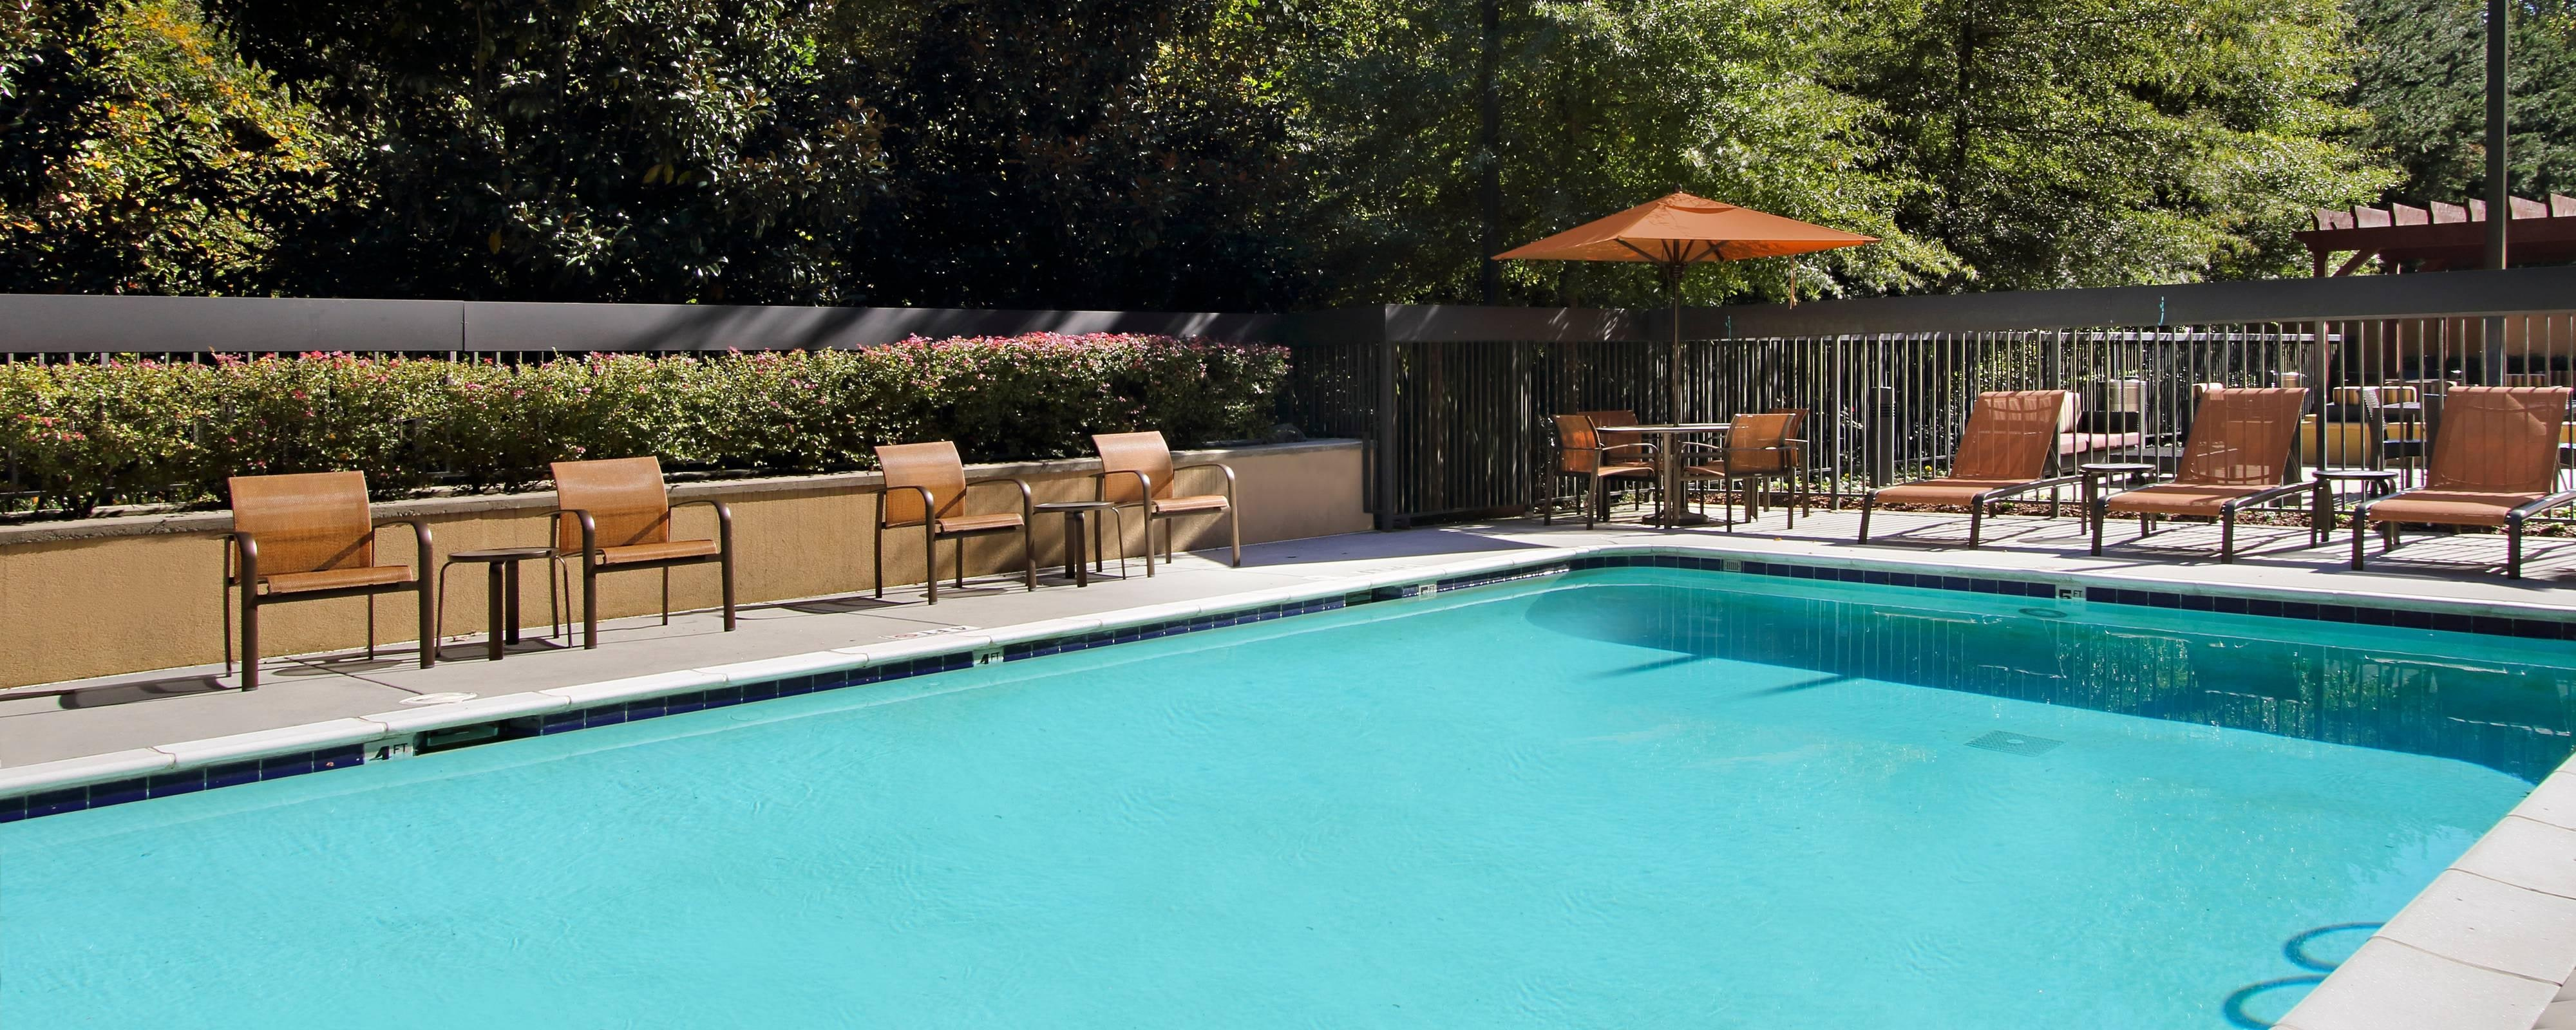 Atlanta Airport Hotels With Fitness Center And Swimming Pool